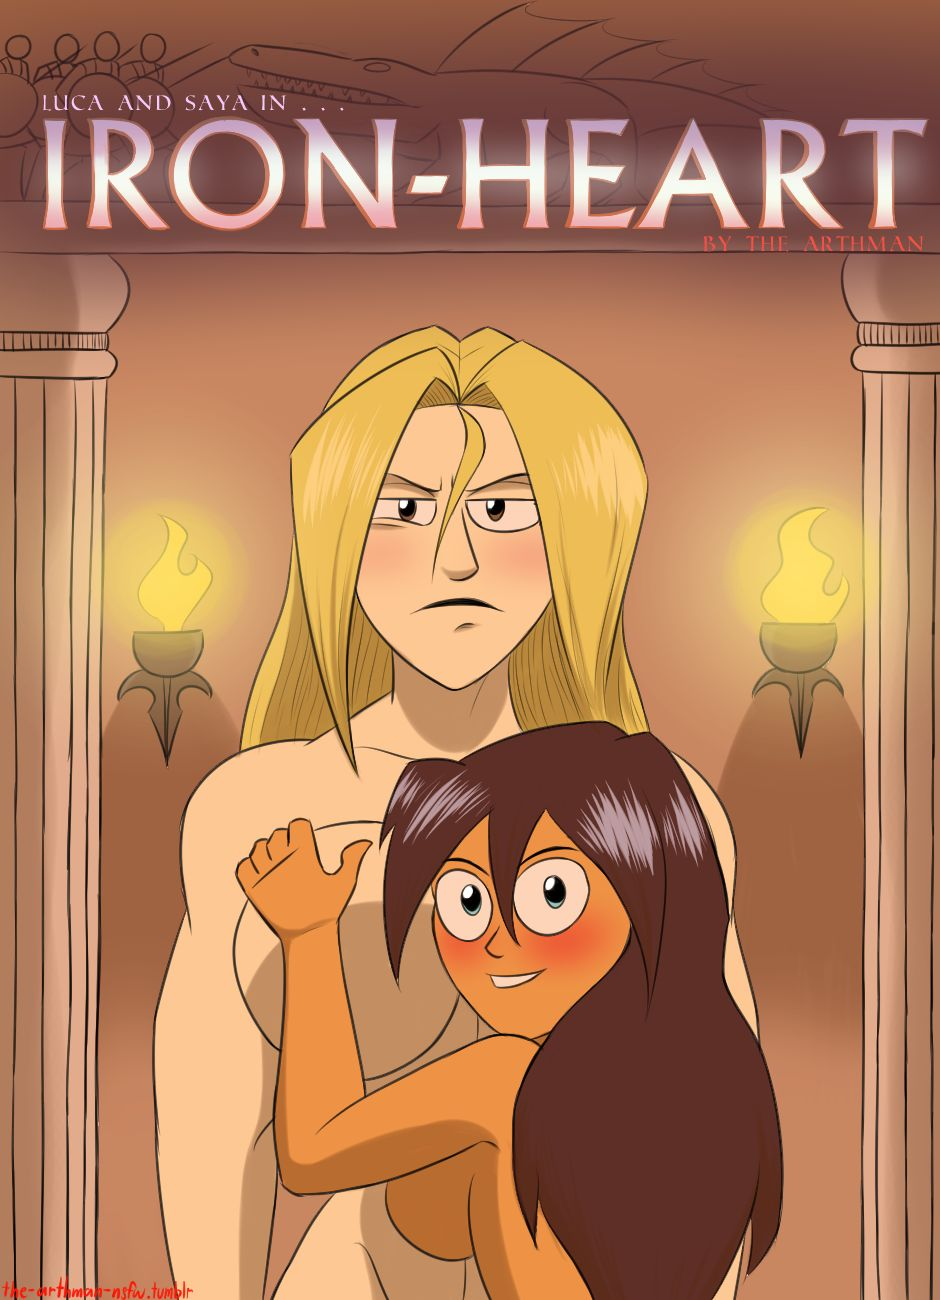 Iron-Heart by The Arthman